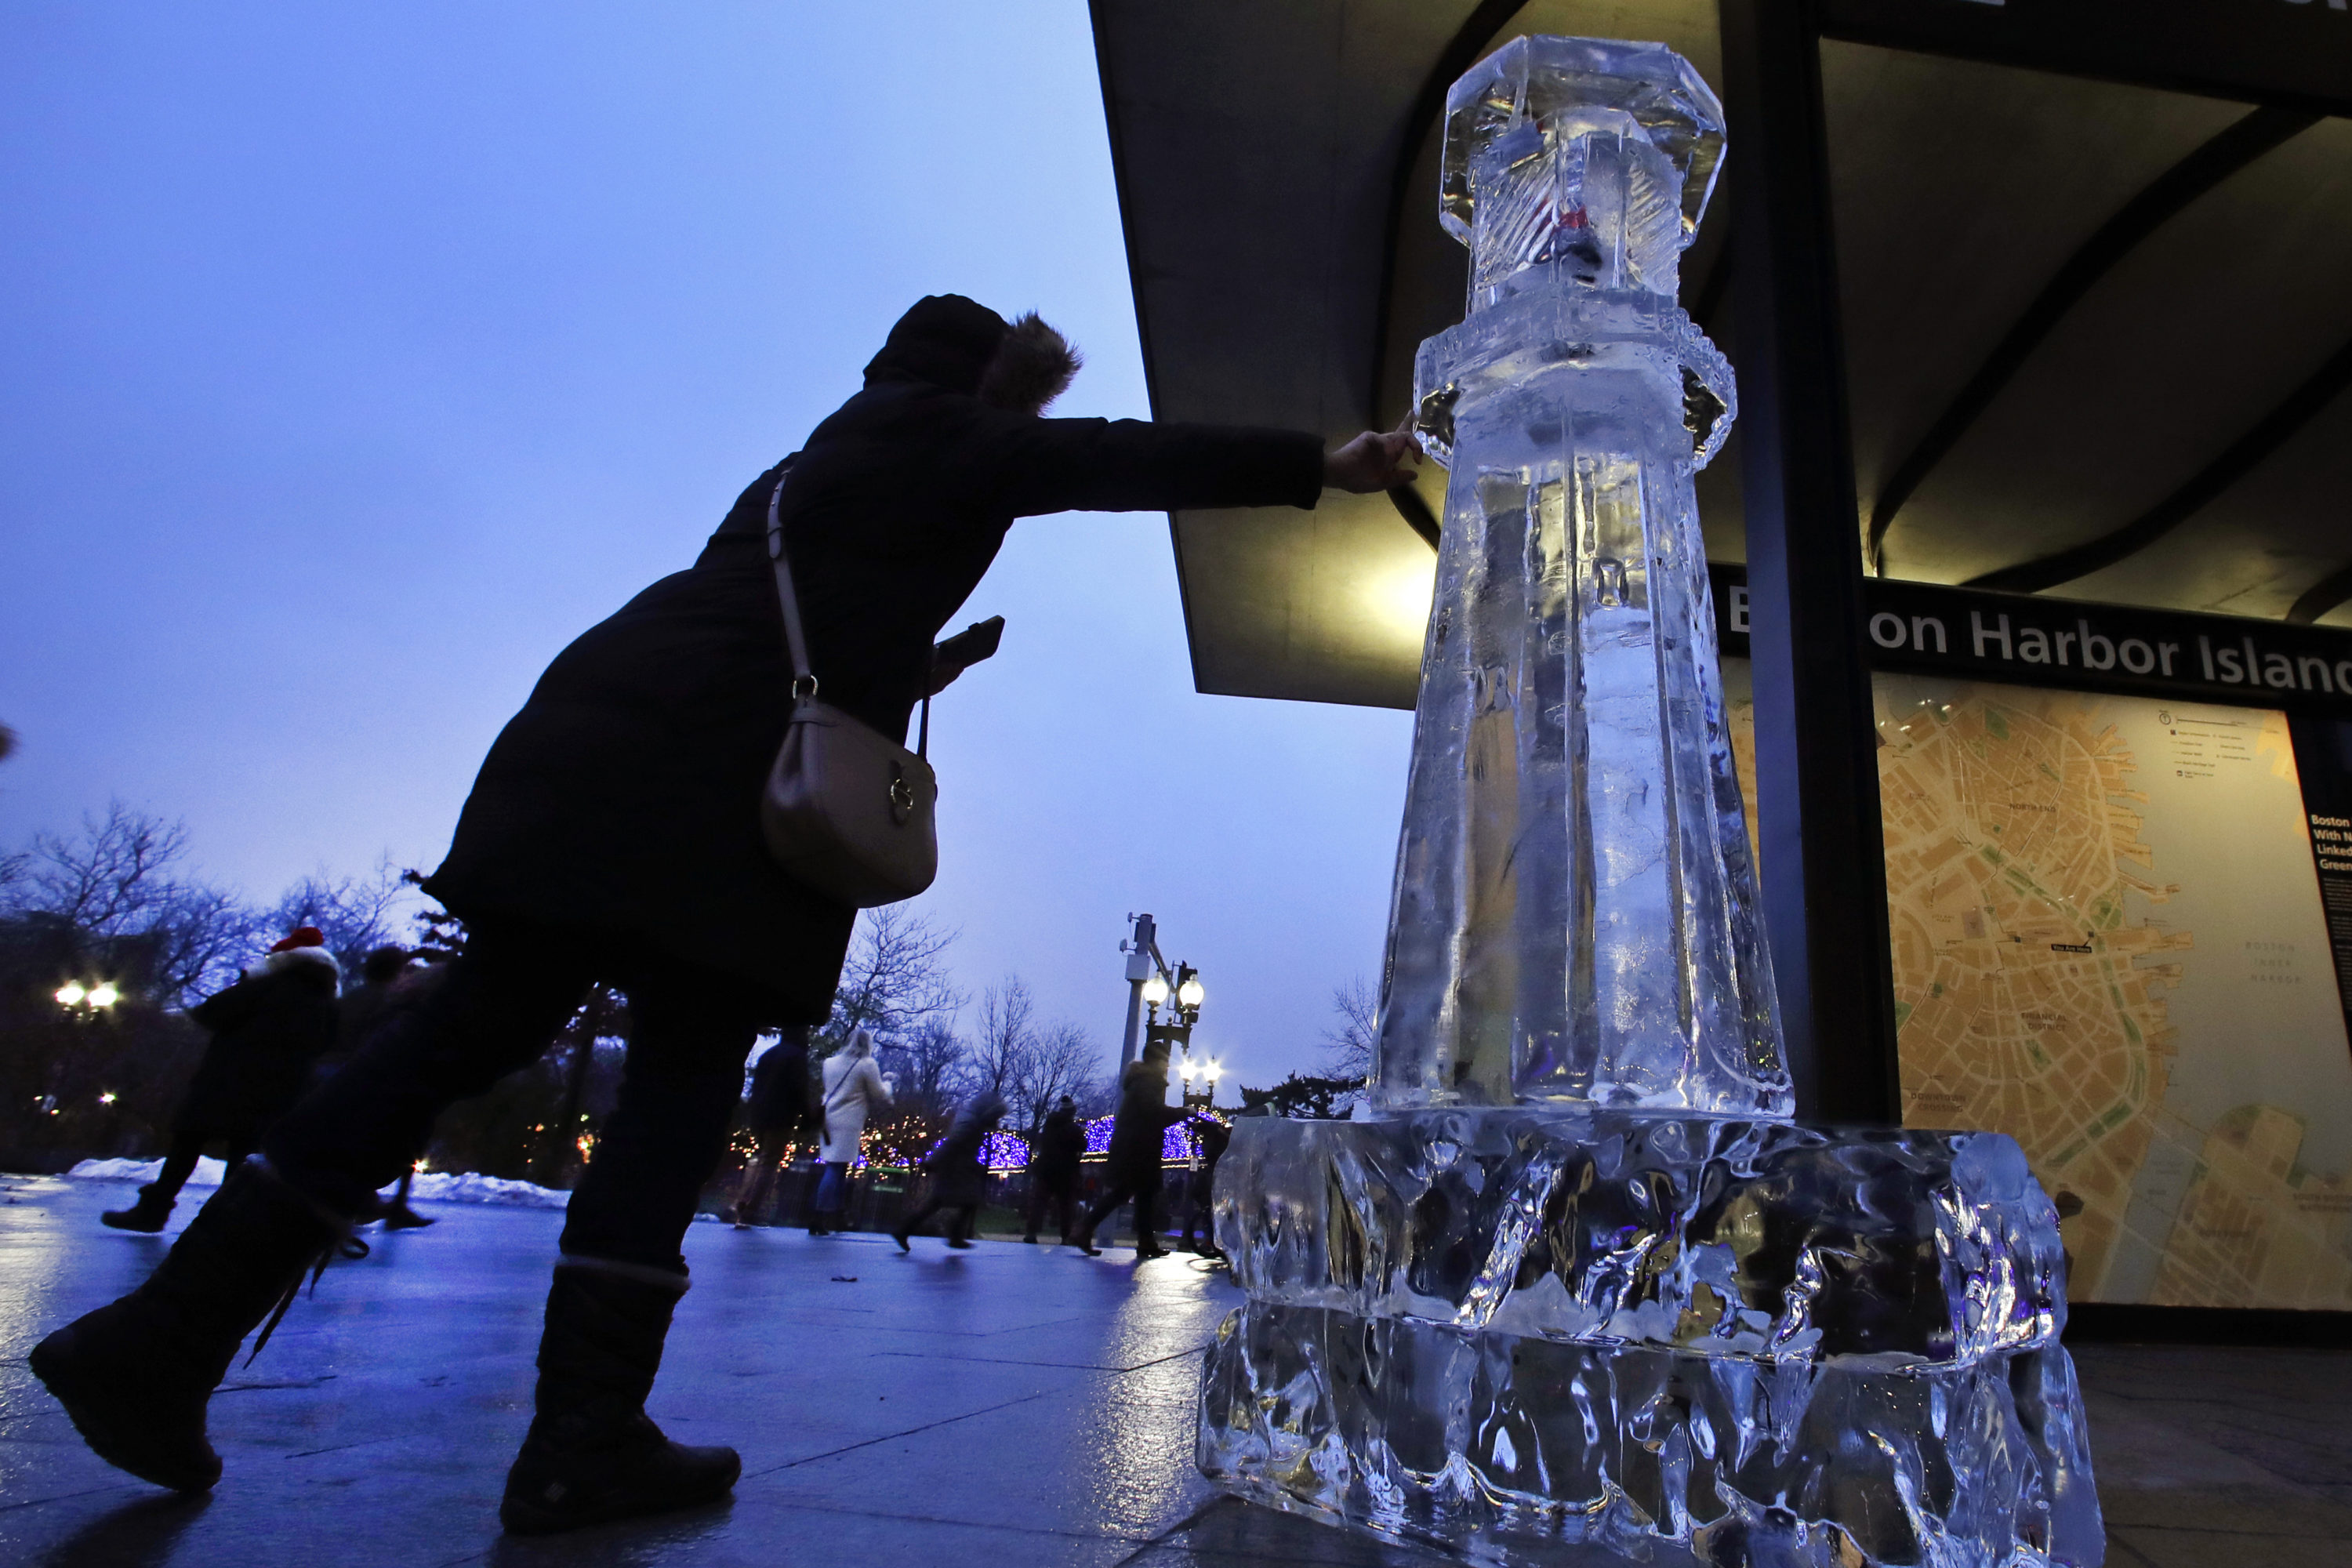 A woman reaches to touch a lighthouse ice sculpture, Friday, Dec. 31, 2019, in Boston. Ice sculptures make a return to the Boston Harborwalk for the 2020 First Night celebration. (AP Photo/Elise Amendola)